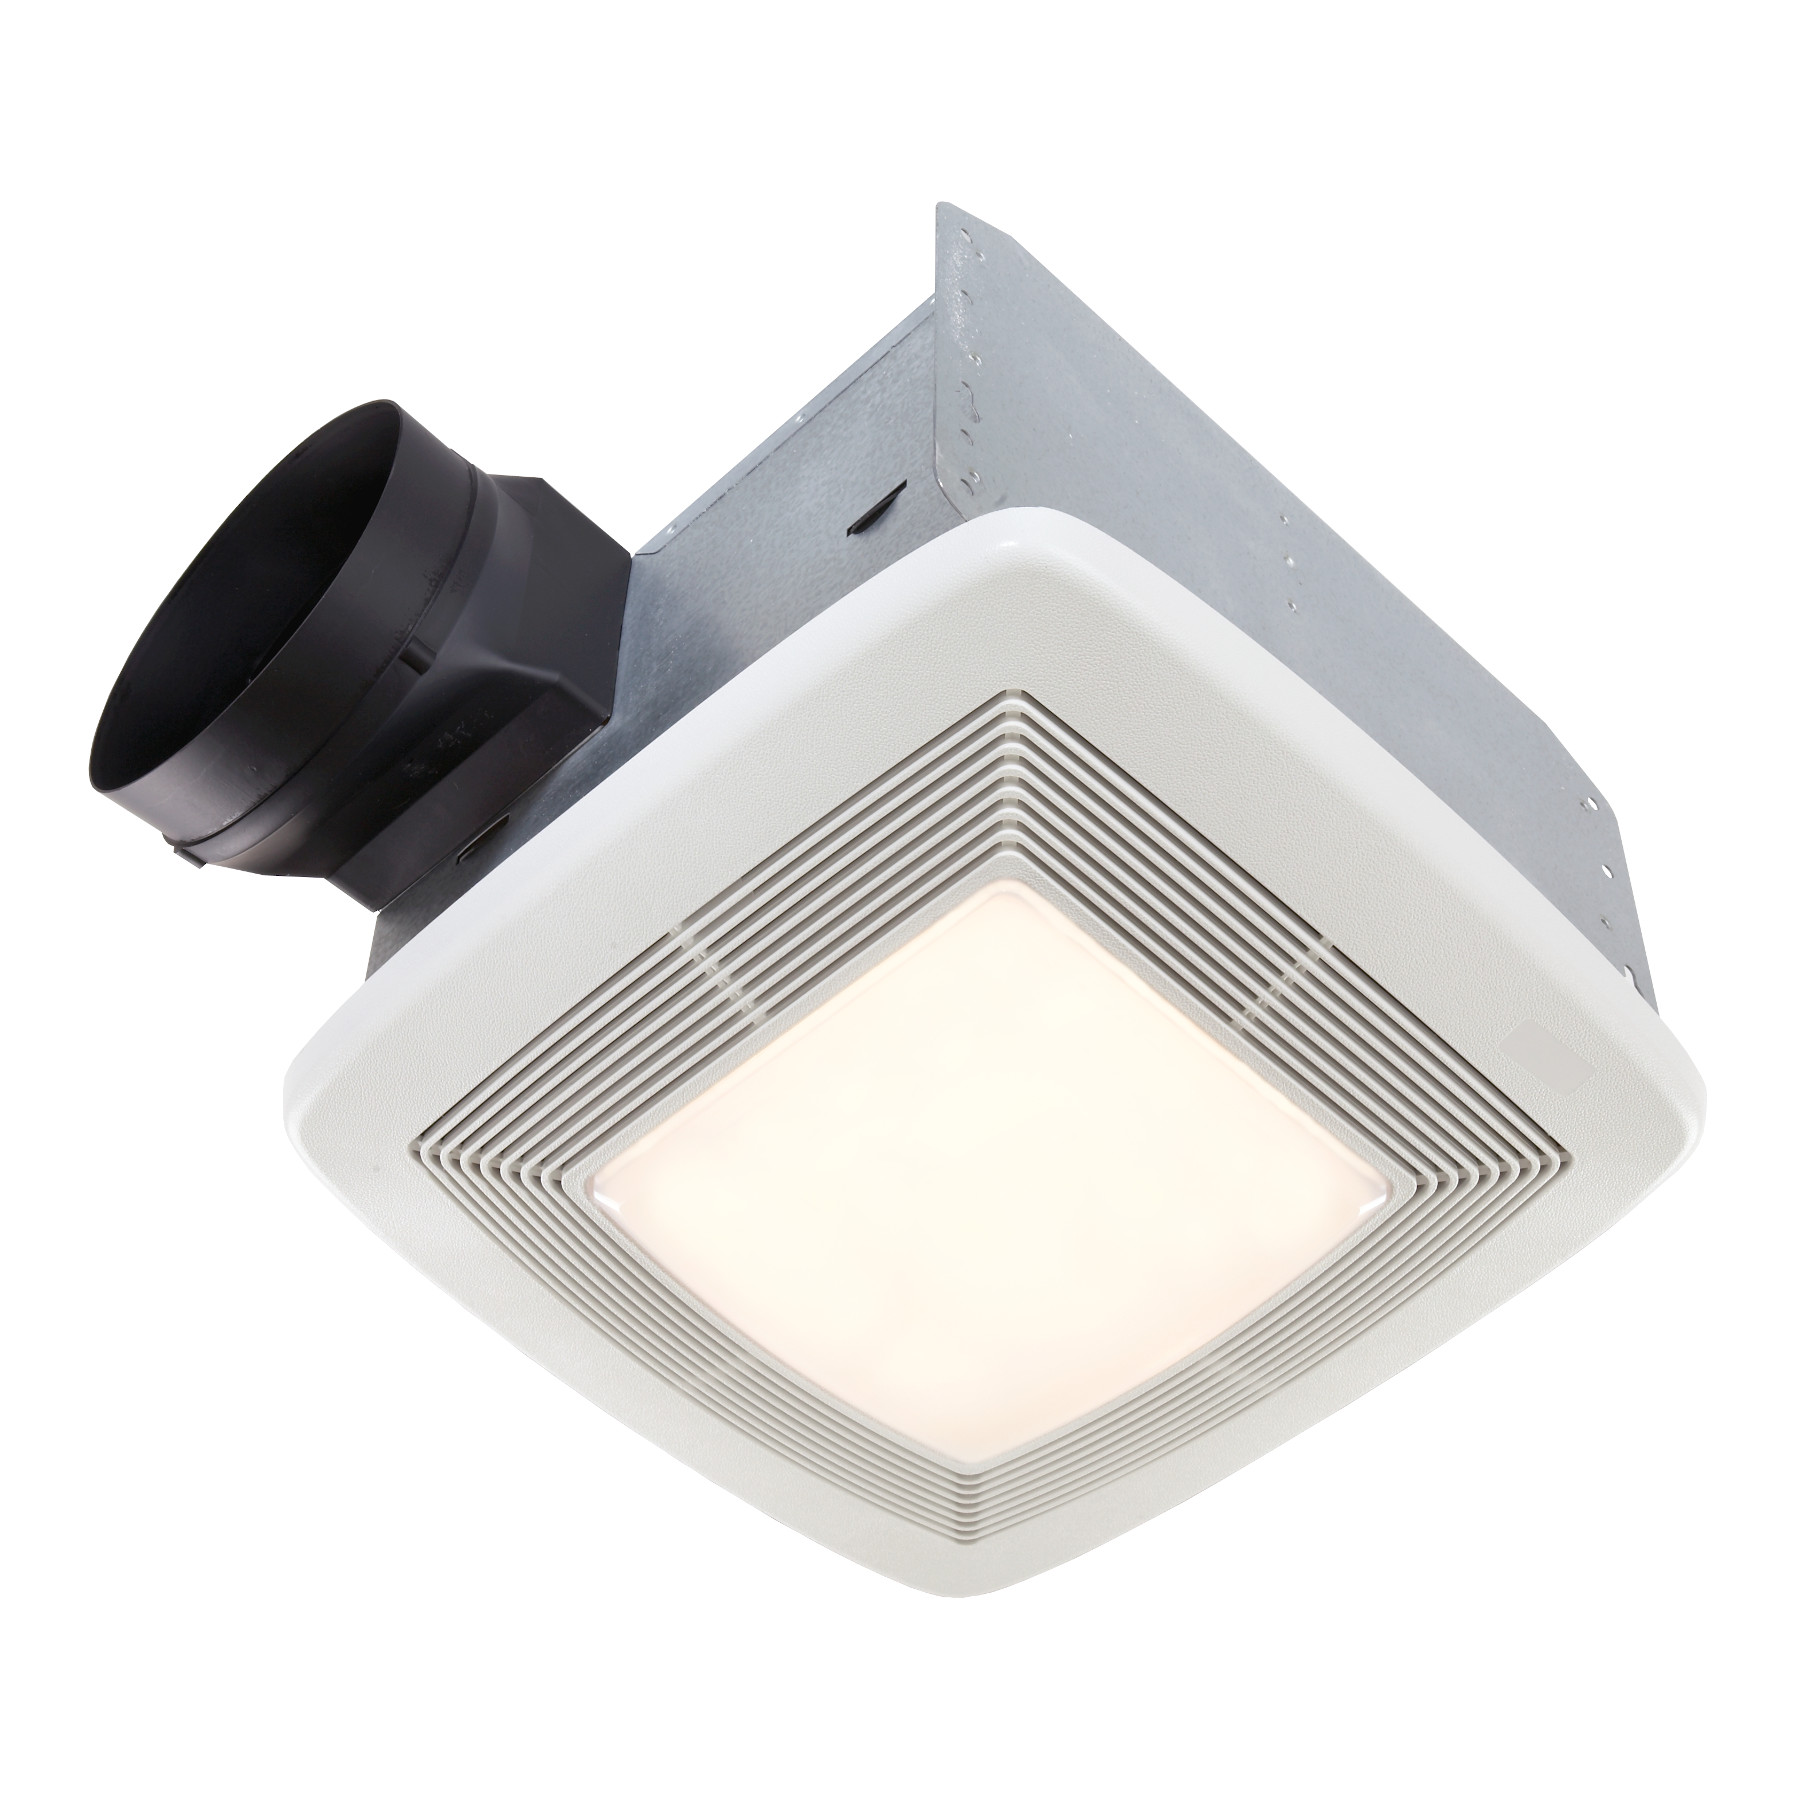 Qtxe110flt Broan Qtxe Series 110 Cfm Ventilation Fan Light 36w Fluorescent Light 4w Nightlight 0 7 Sones E